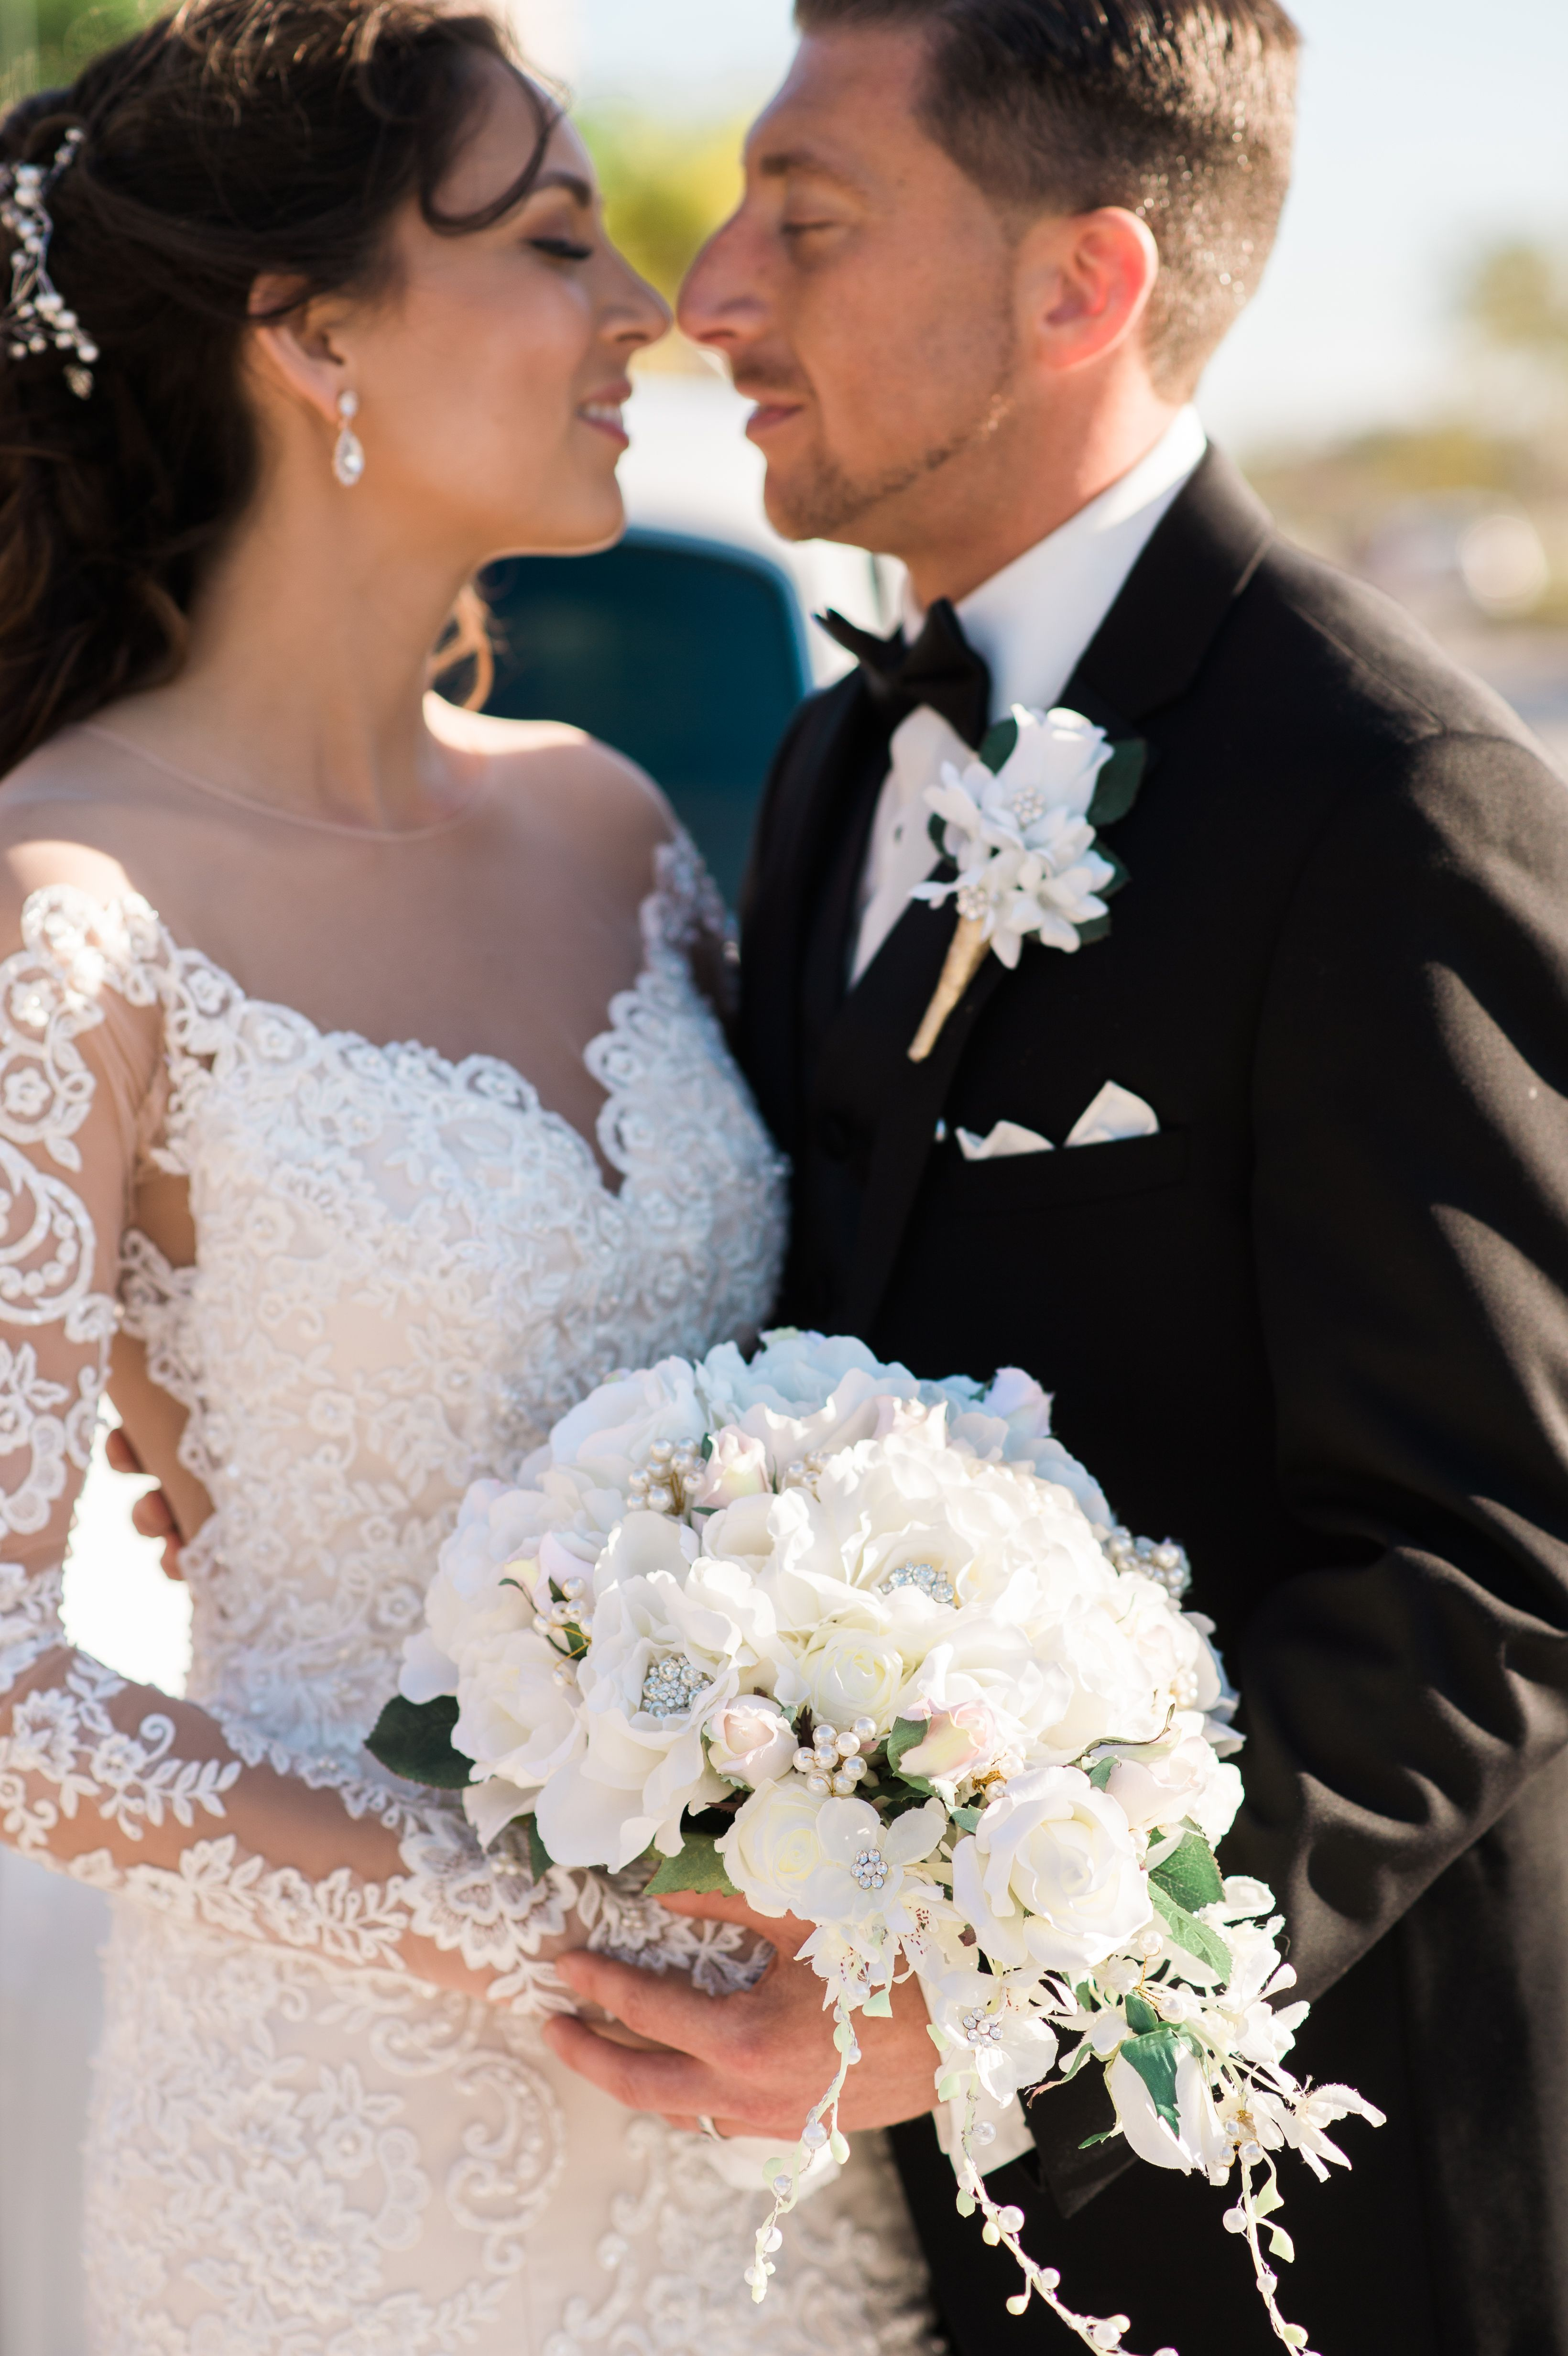 Complete Weddings + Events